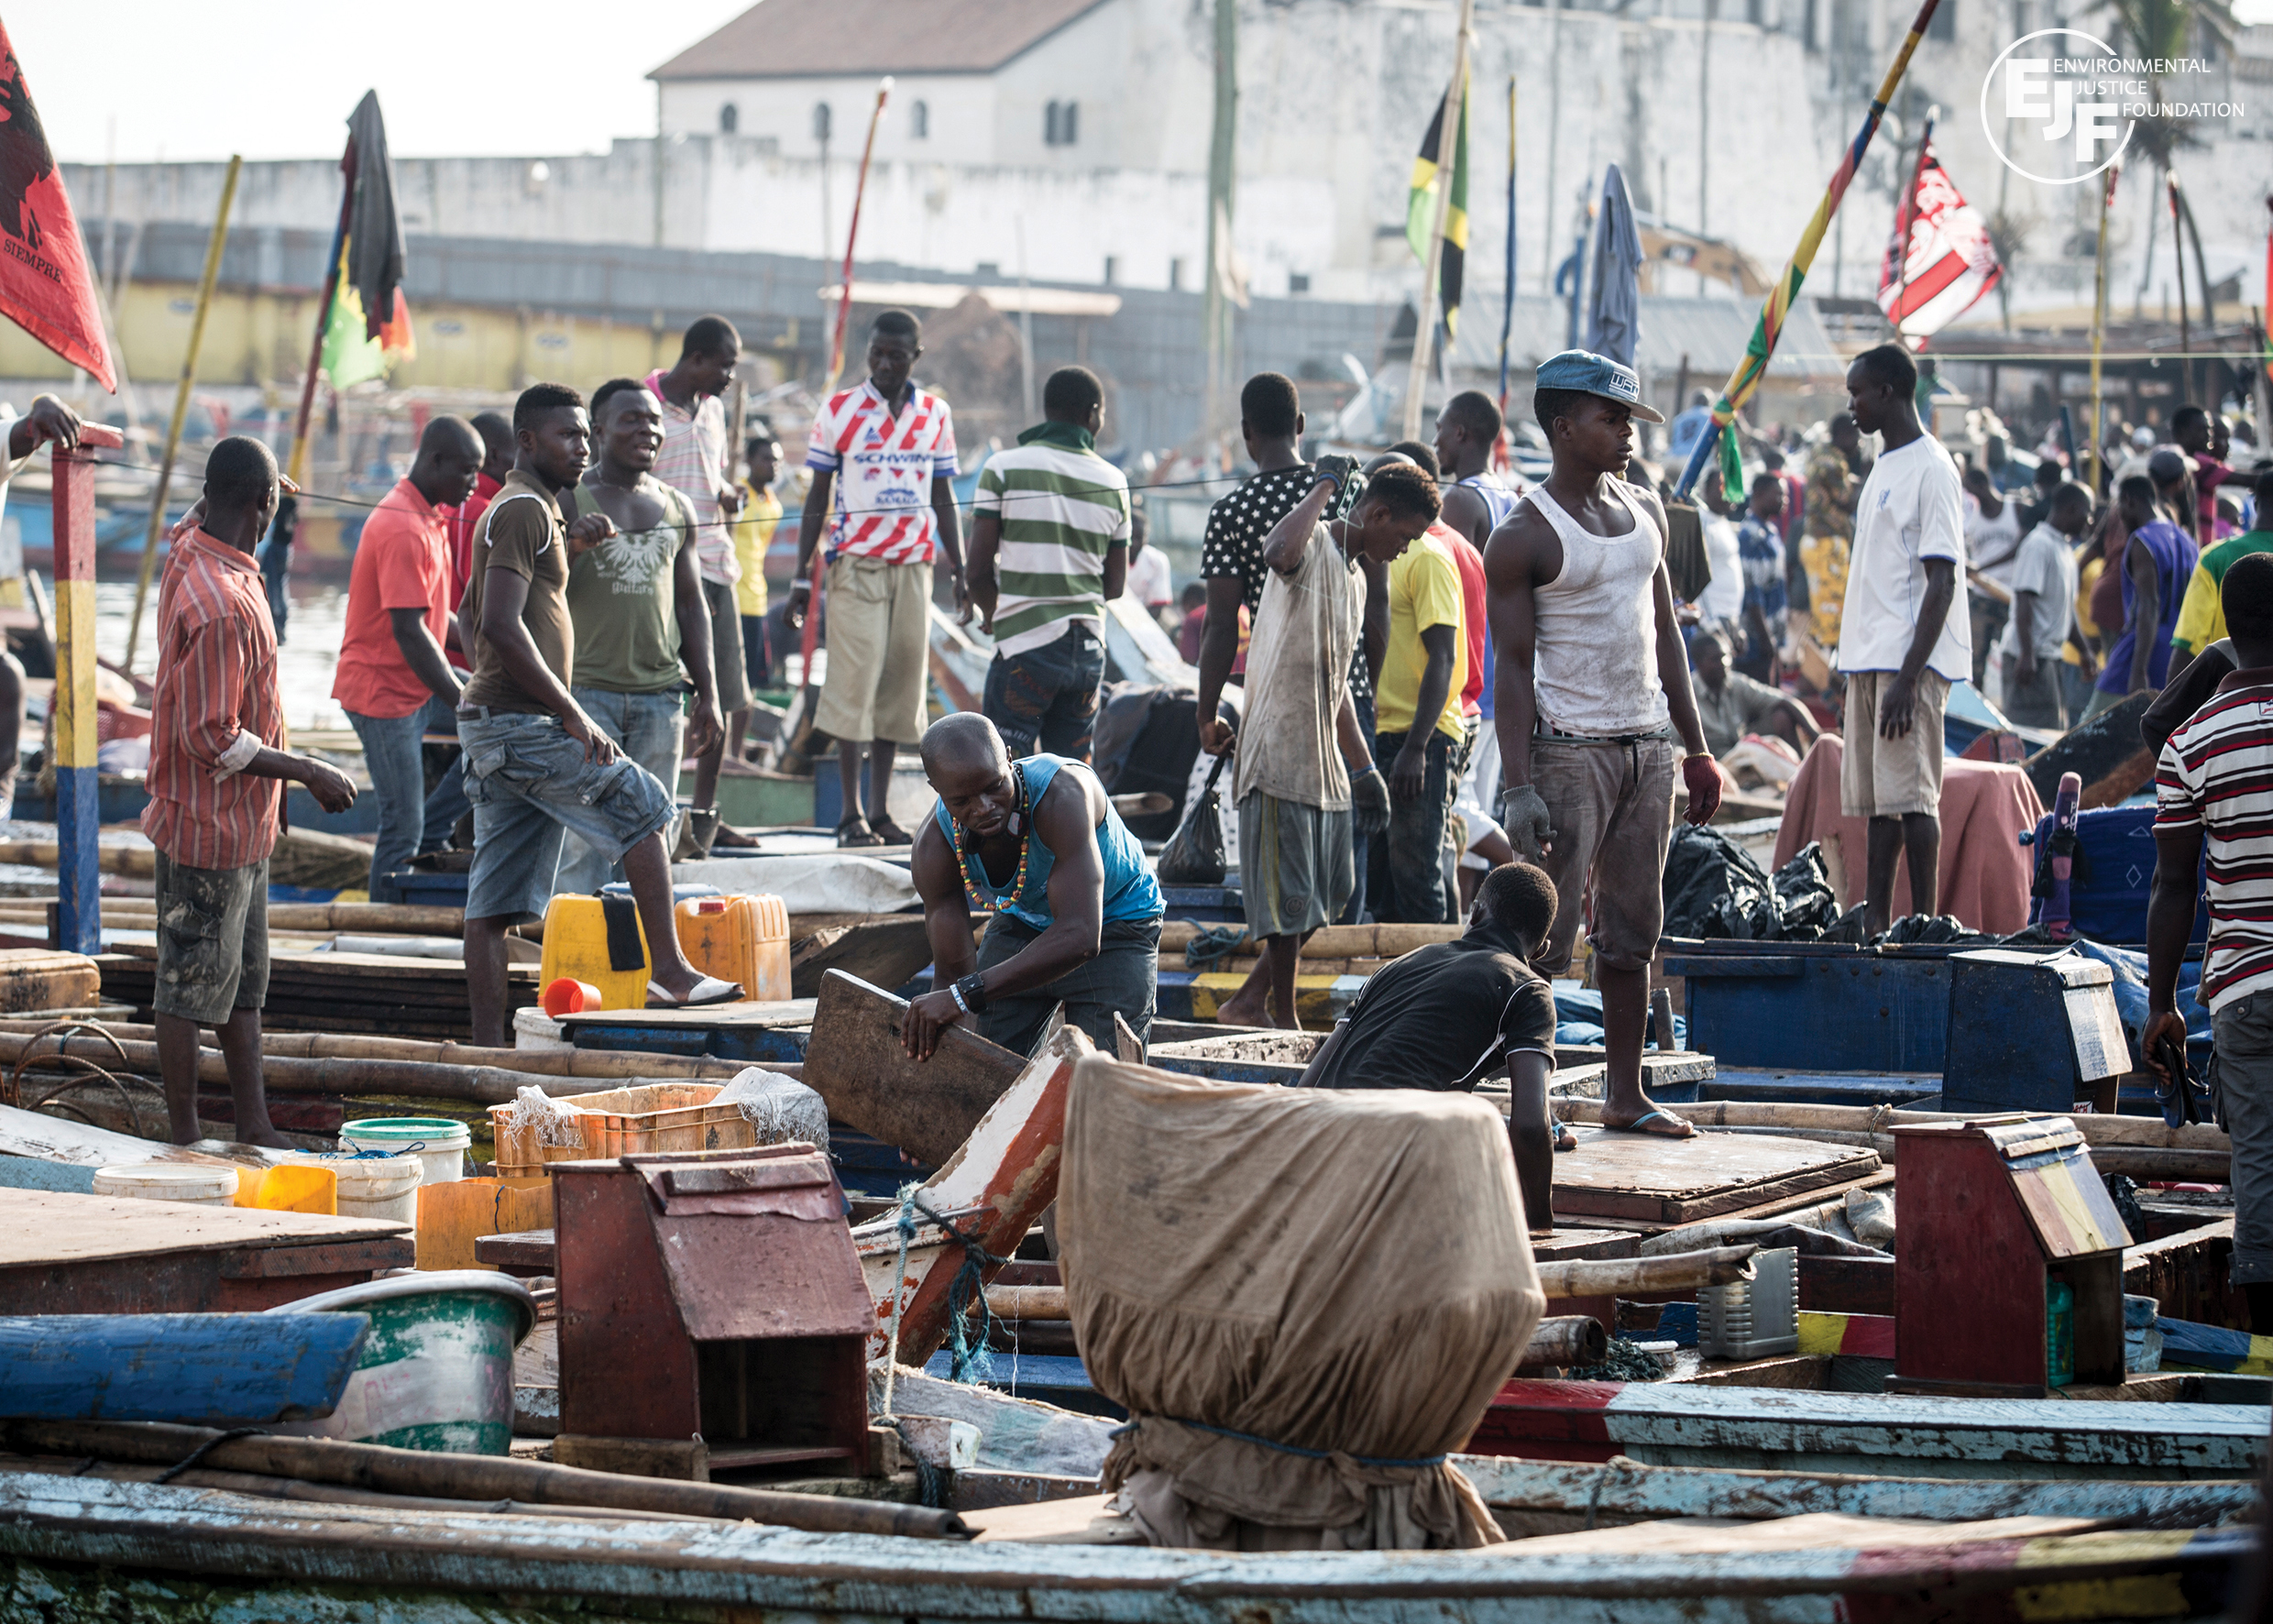 China's hidden fleet: Illegal practices in Ghana's industrial fishery